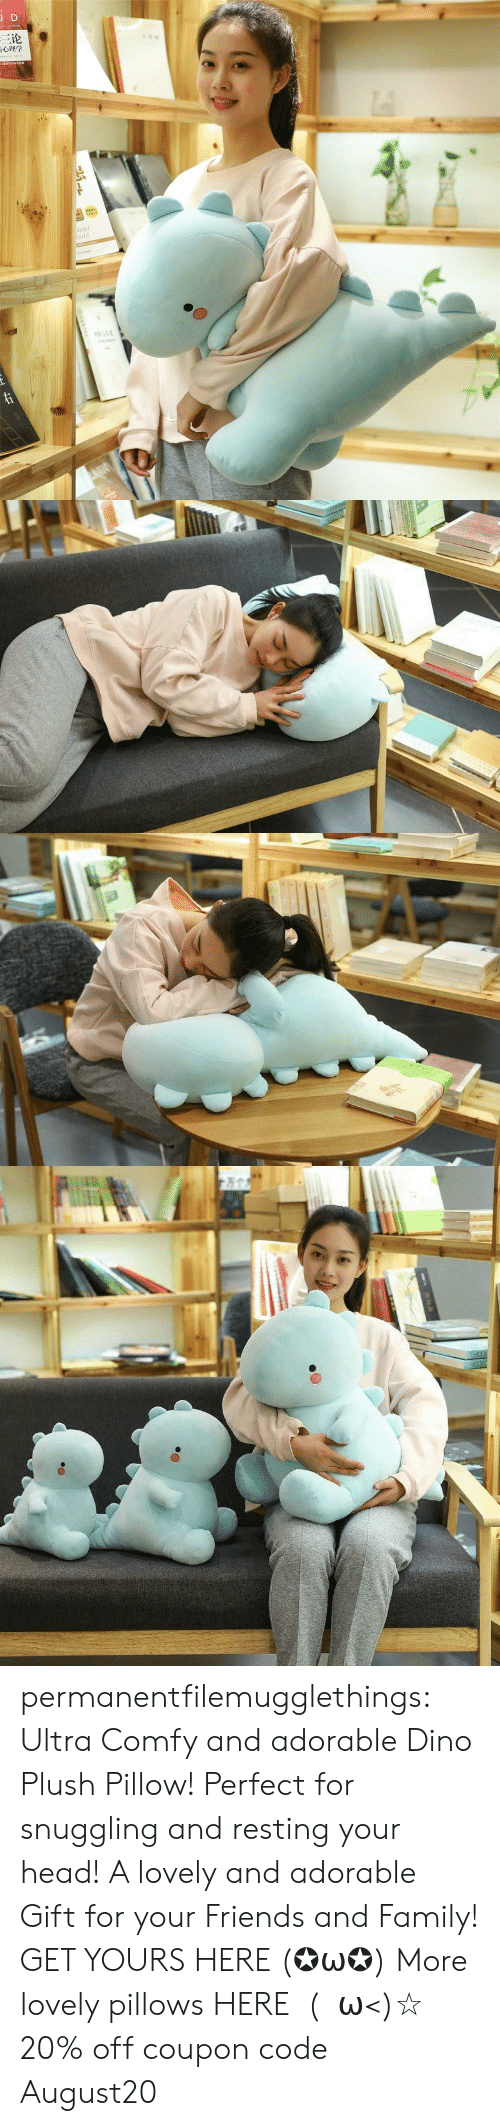 Family, Friends, and Head: JD  三论  laint  orld  TDNAR  ww.e permanentfilemugglethings:  Ultra Comfy and adorable Dino Plush Pillow! Perfect for snuggling and resting your head! A lovely and adorable Gift for your Friends and Family! GET YOURS HERE (✪ω✪) More lovely pillows HERE  (・ω<)☆ 20% off coupon code:August20